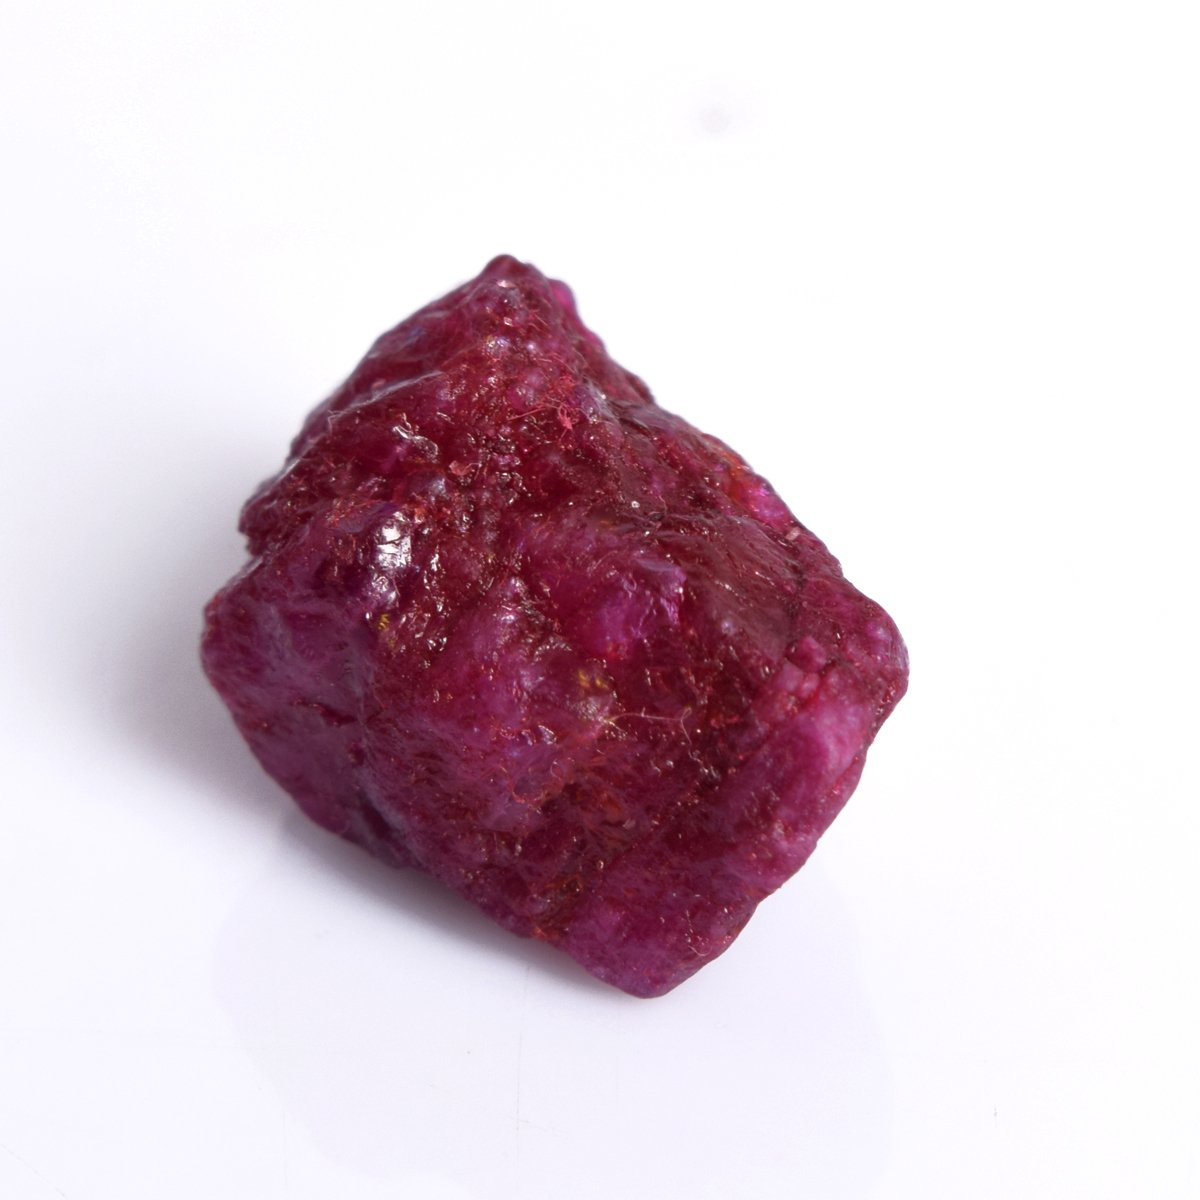 Egl Certified Red Ruby 16.50 Ct. Uncut Healing Crystal Natural Untreated Raw Rough Ruby Gem DP-356 hamlet e commerce